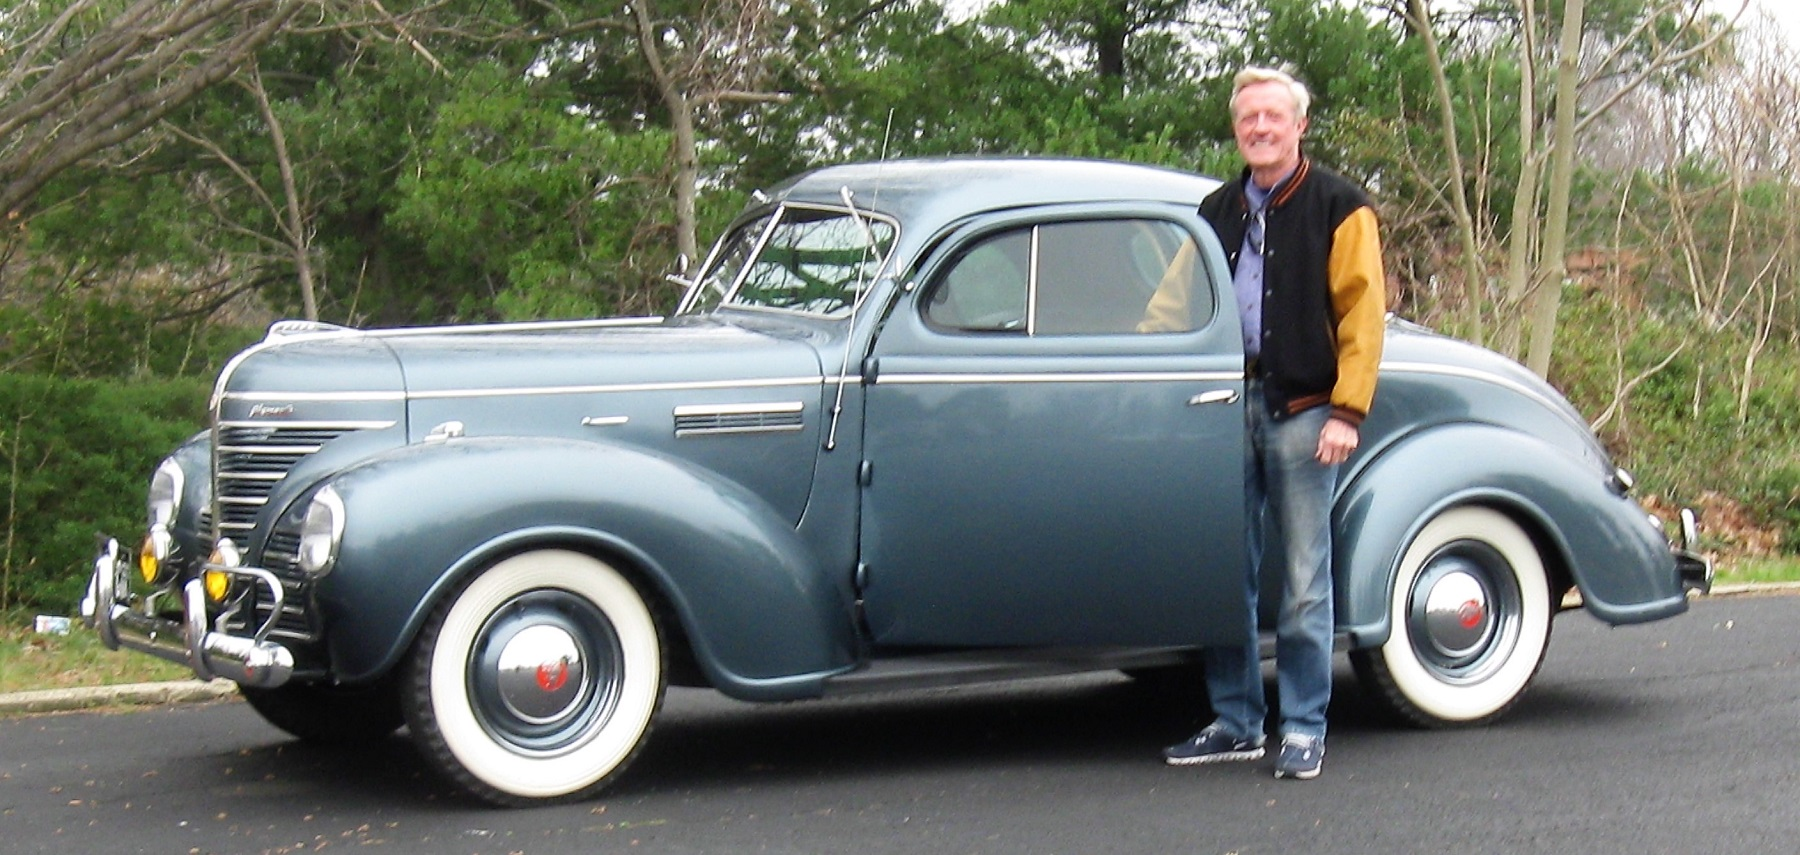 hight resolution of after purchasing a shop manual for a 1939 plymouth and some critical tools norris commenced removing the inline six cylinder engine and